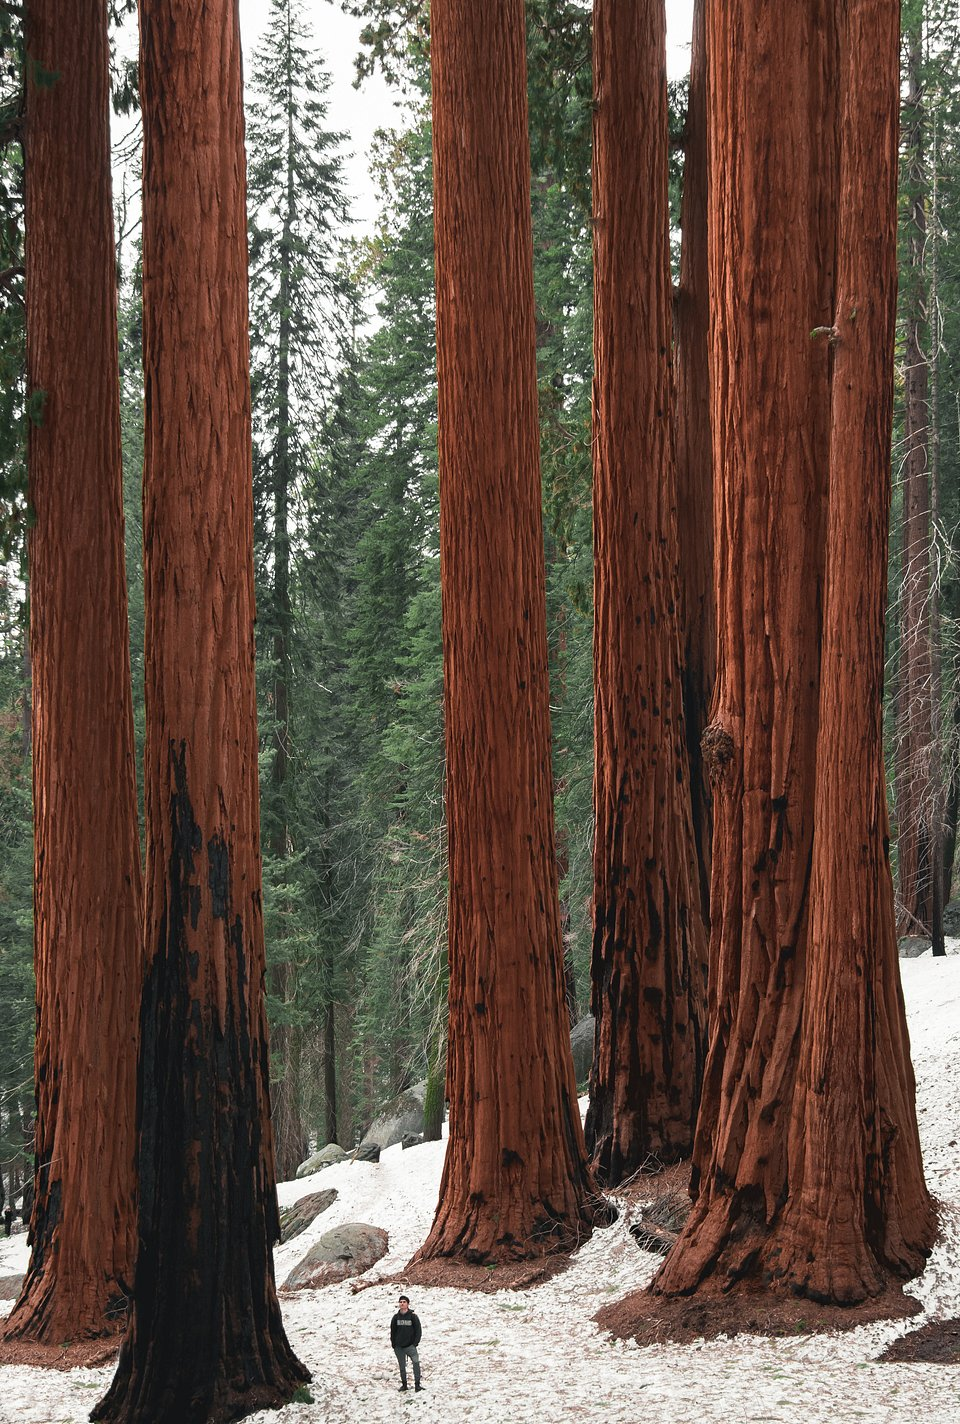 Location: Sequoia National Park, USA